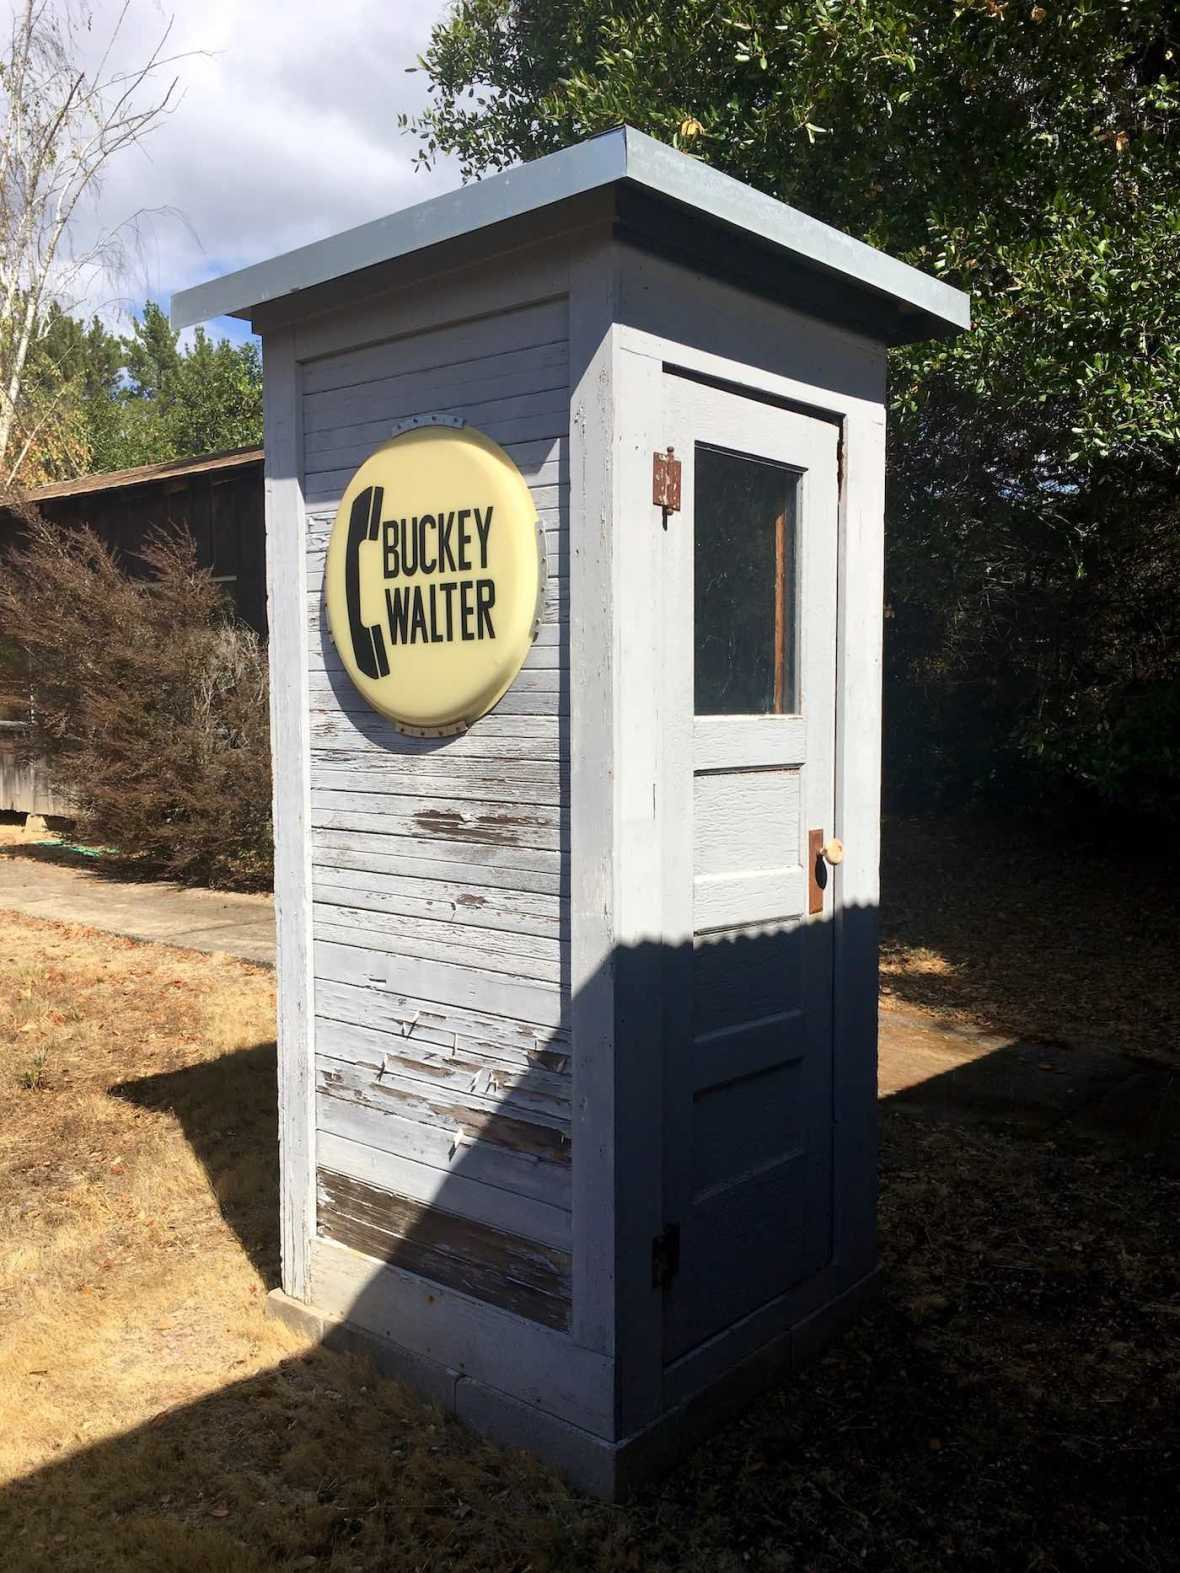 Buckey Walter (phone booth in Boontling) at the Anderson Valley Historical Society museum in Boonville, California